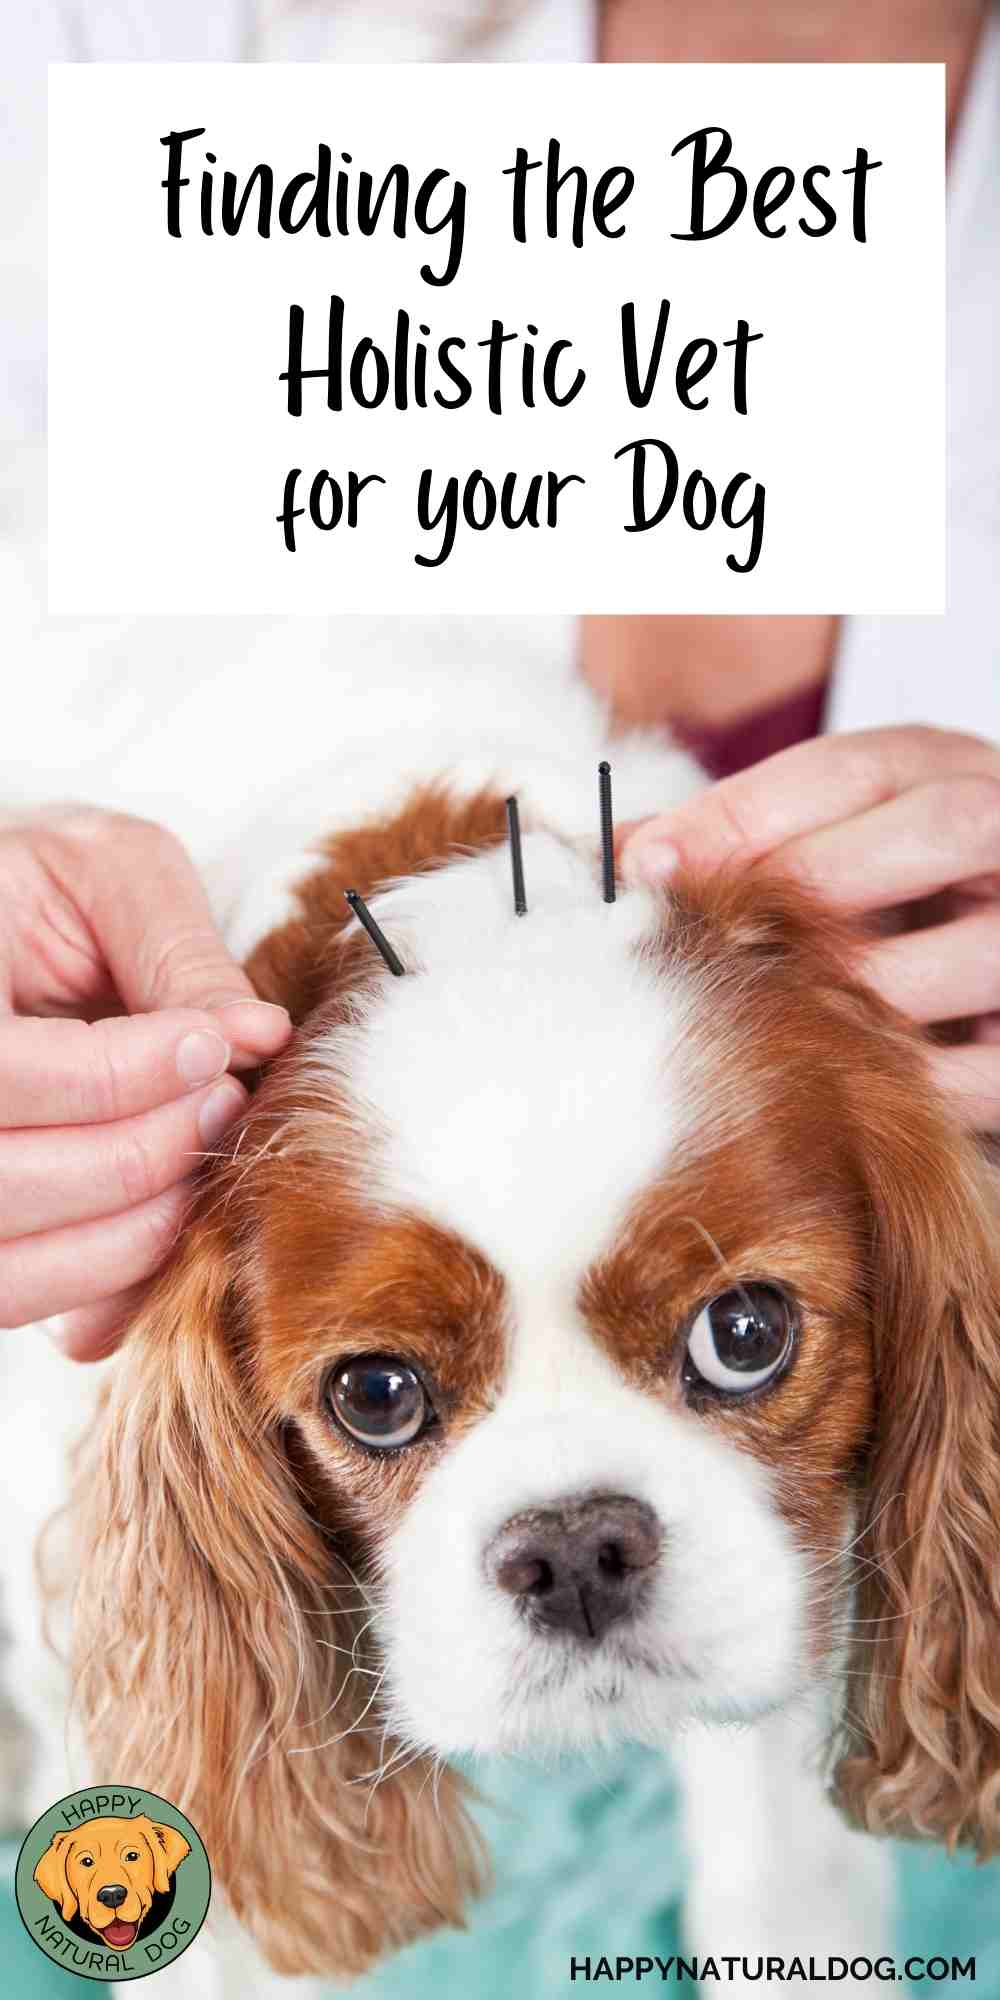 How to Find a Holistic Veterinarian